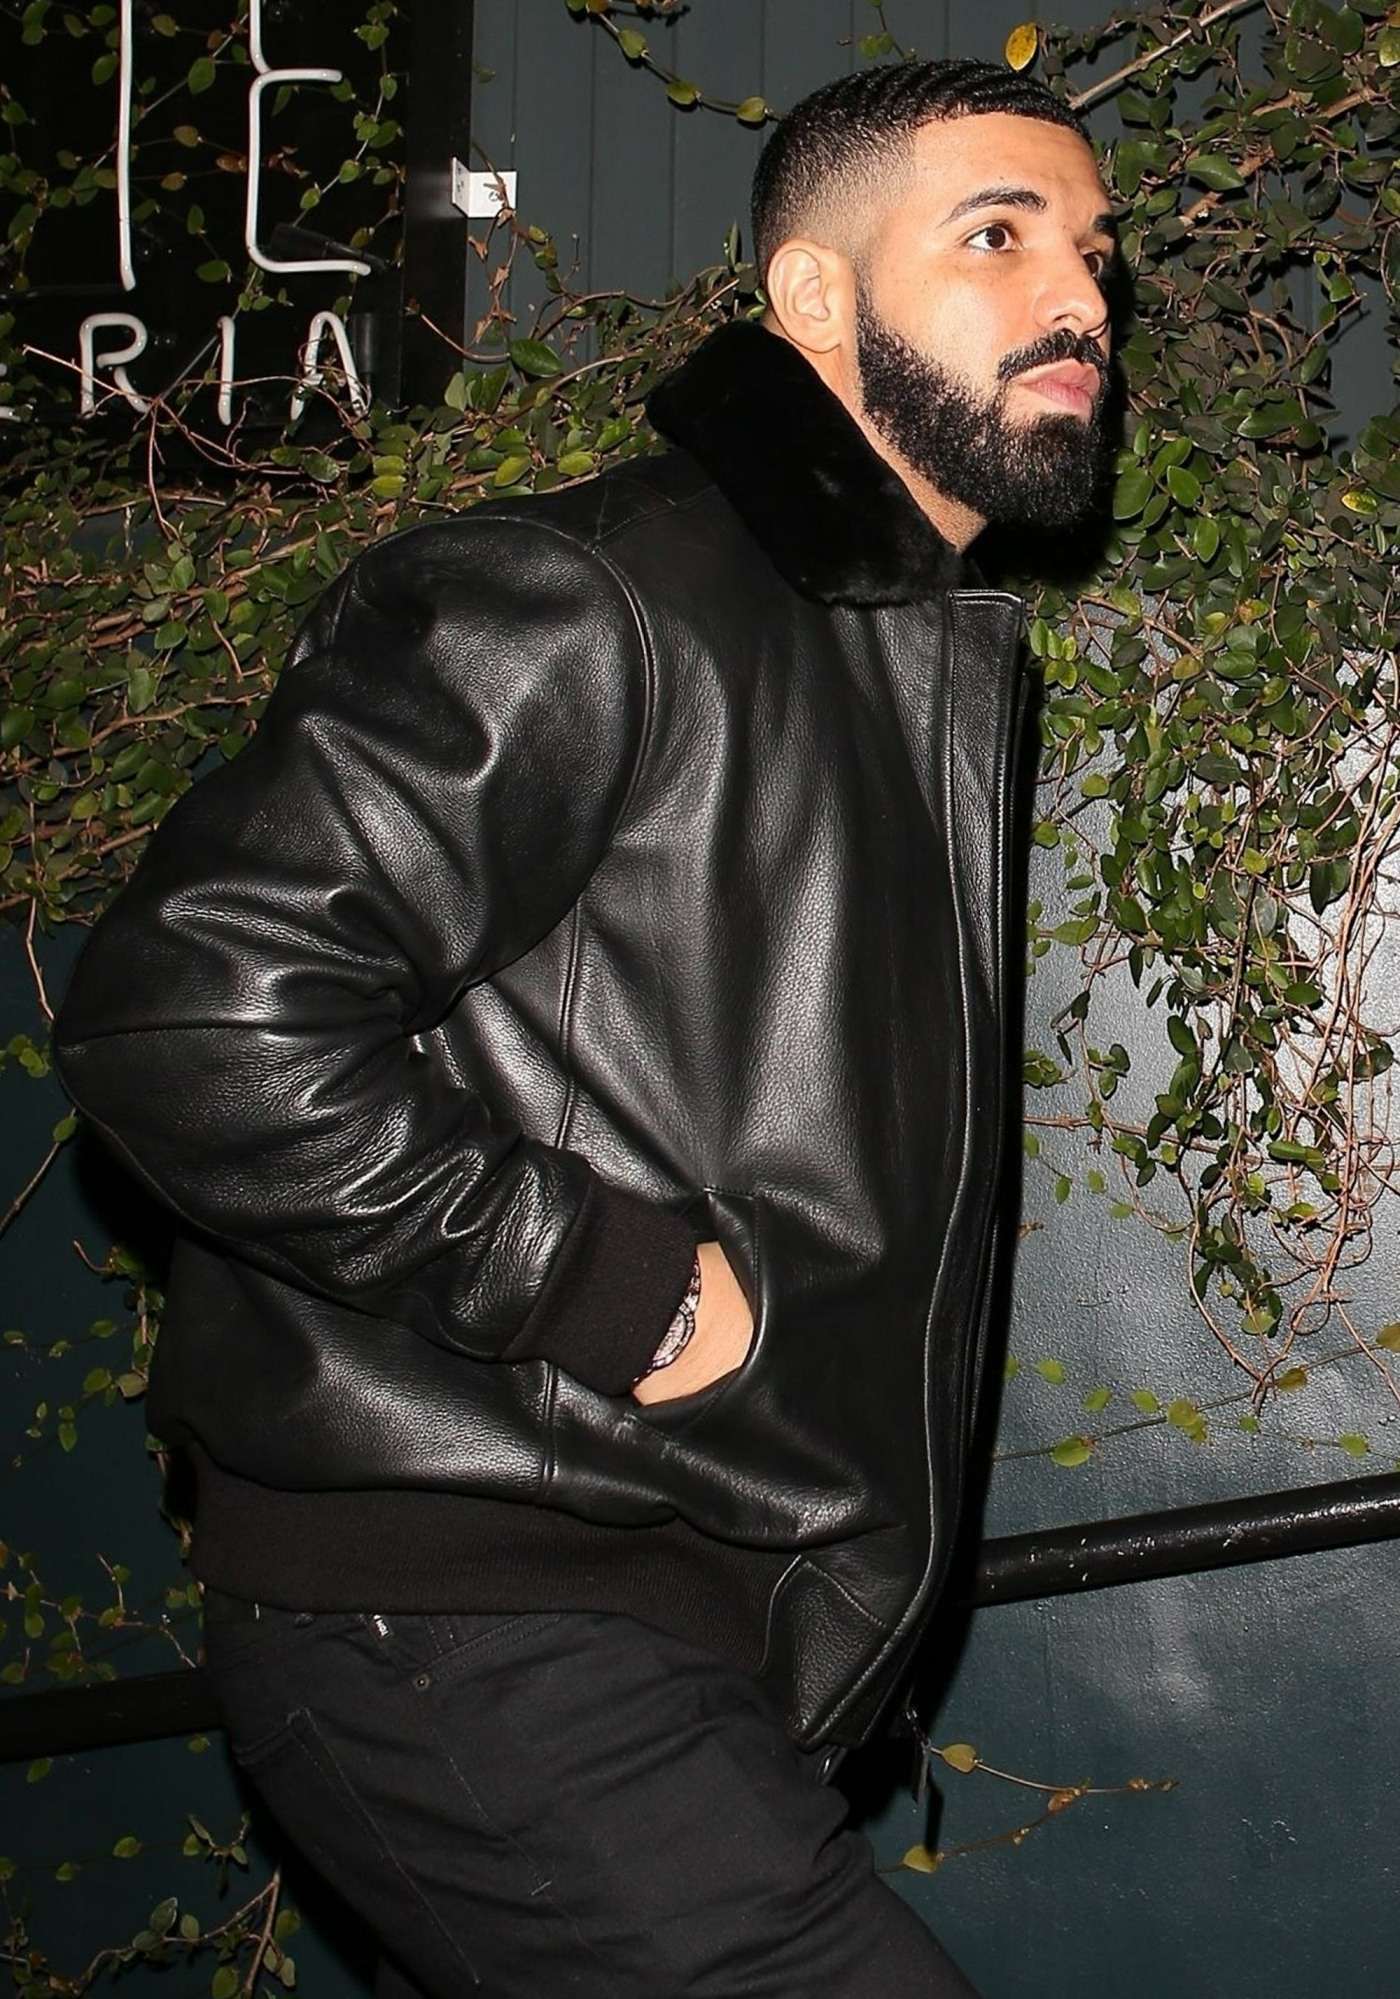 Drake celebrates another sold out Aubrey & the Three Migos show at Poppy